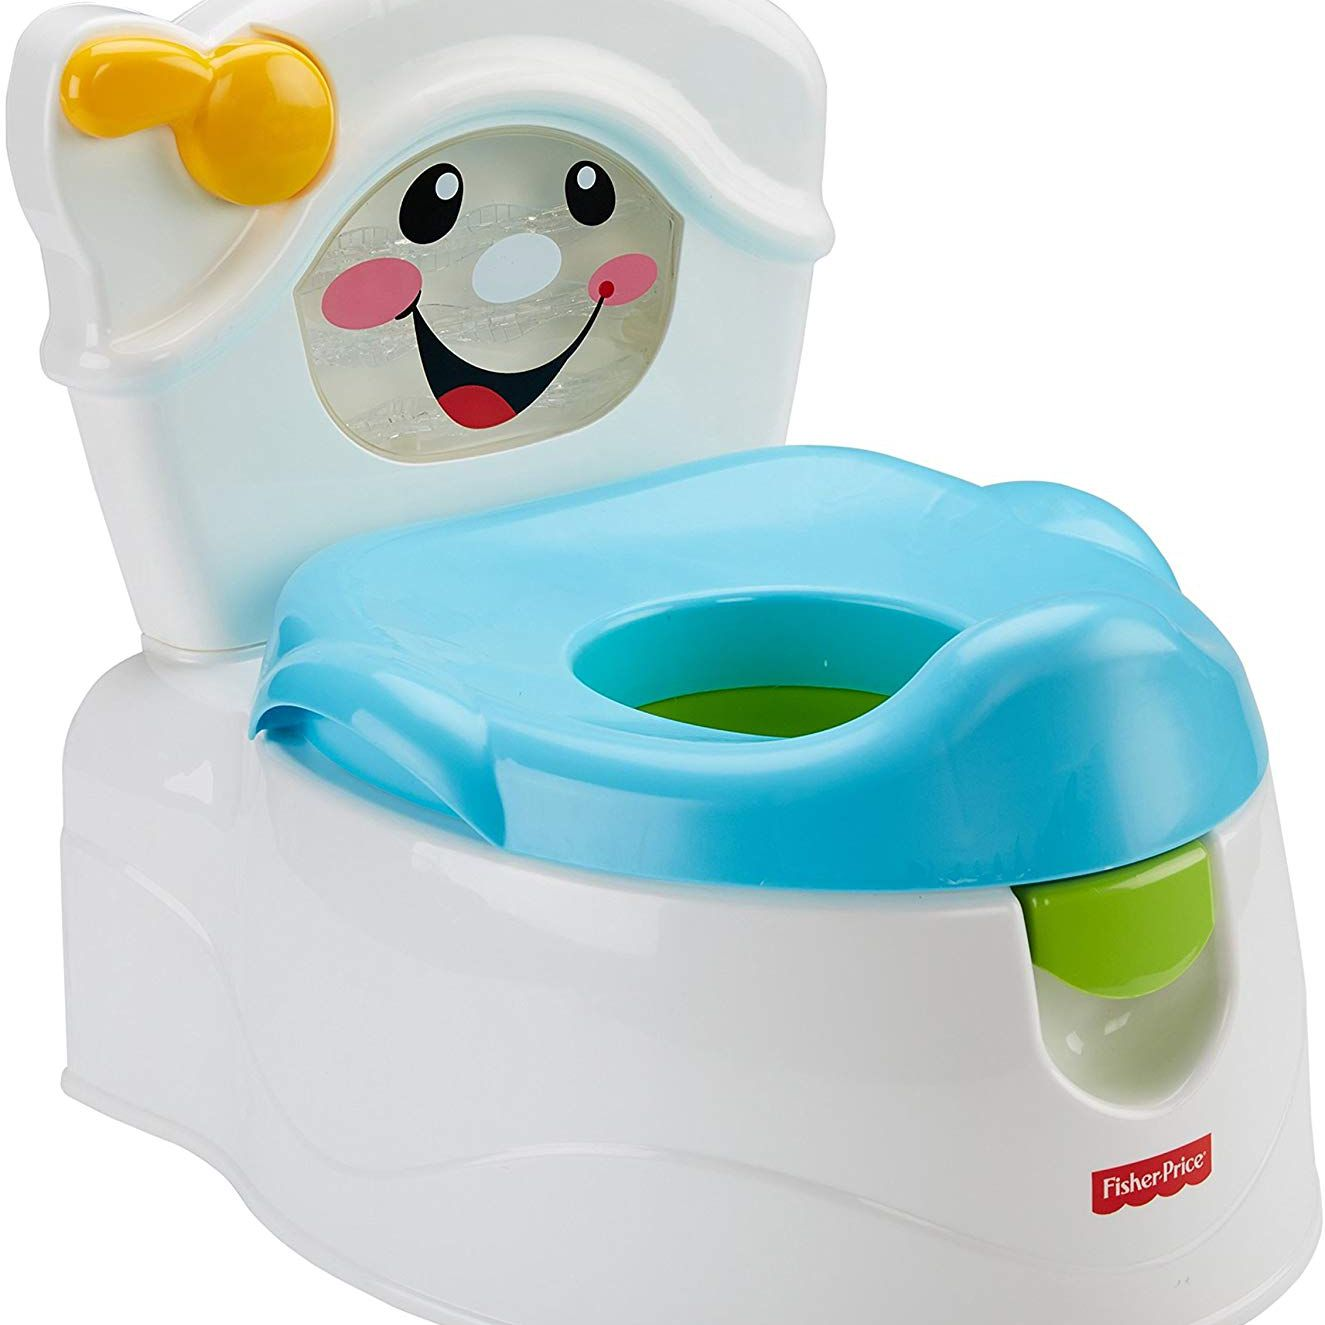 the 7 best potty chairs of 2021